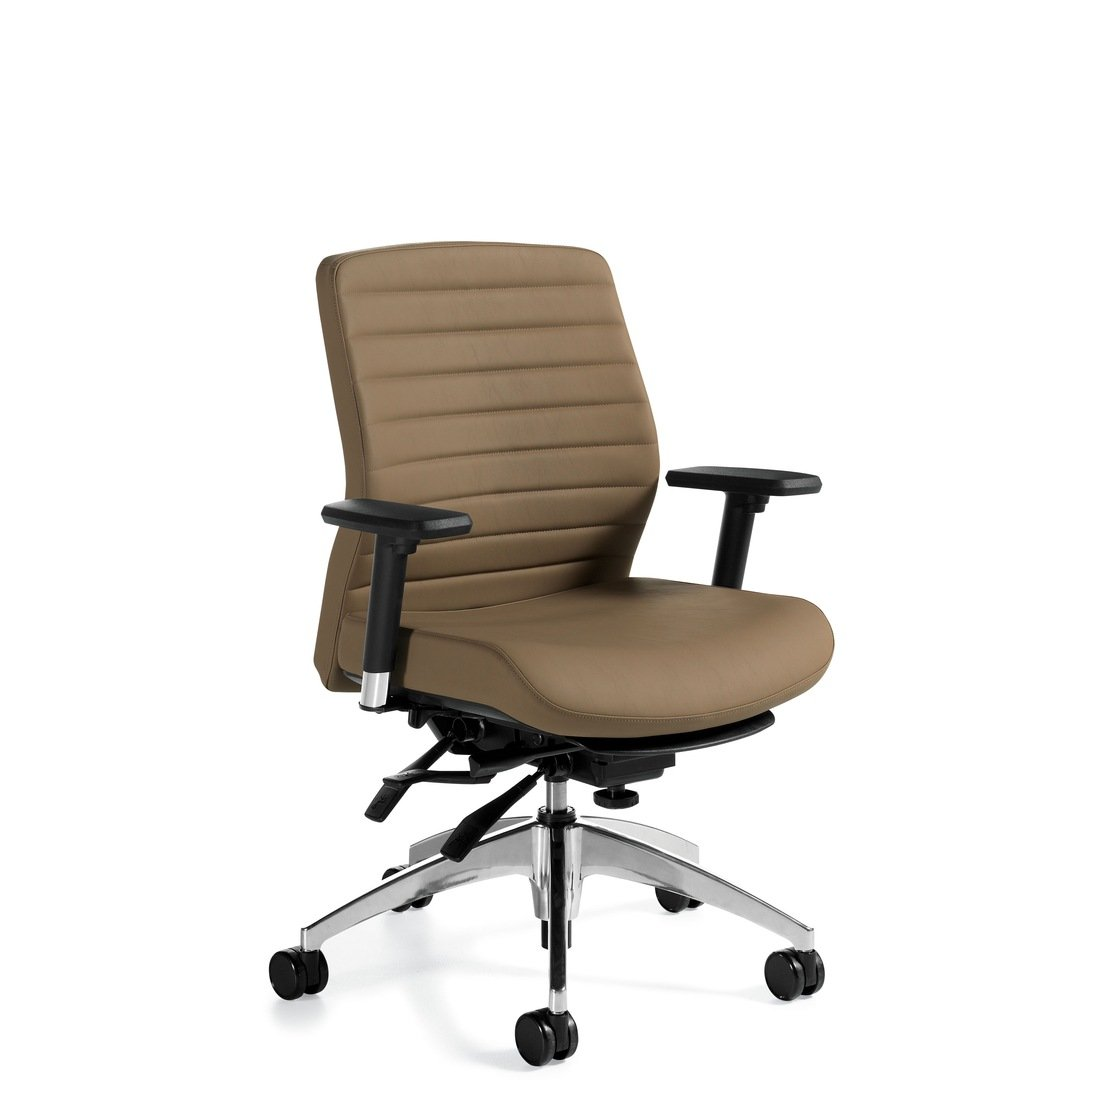 Aspen medium back multi-tilter chair, model 2852LM-3. This chair has been placed on a white background.